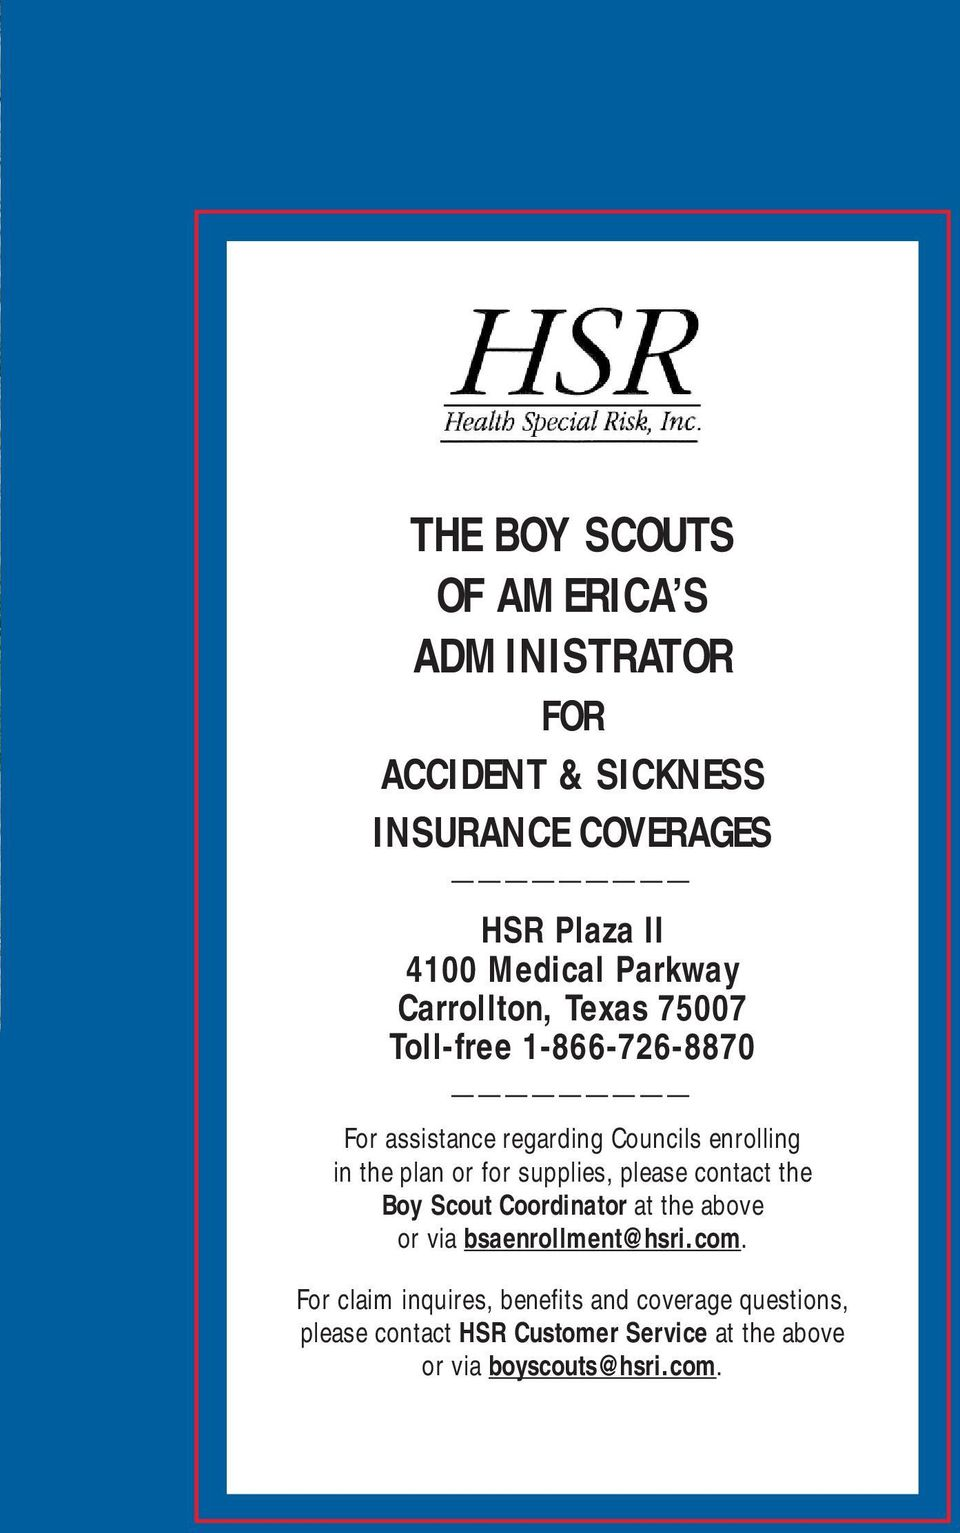 or for supplies, please contact the Boy Scout Coordinator at the above or via bsaenrollment@hsri.com.